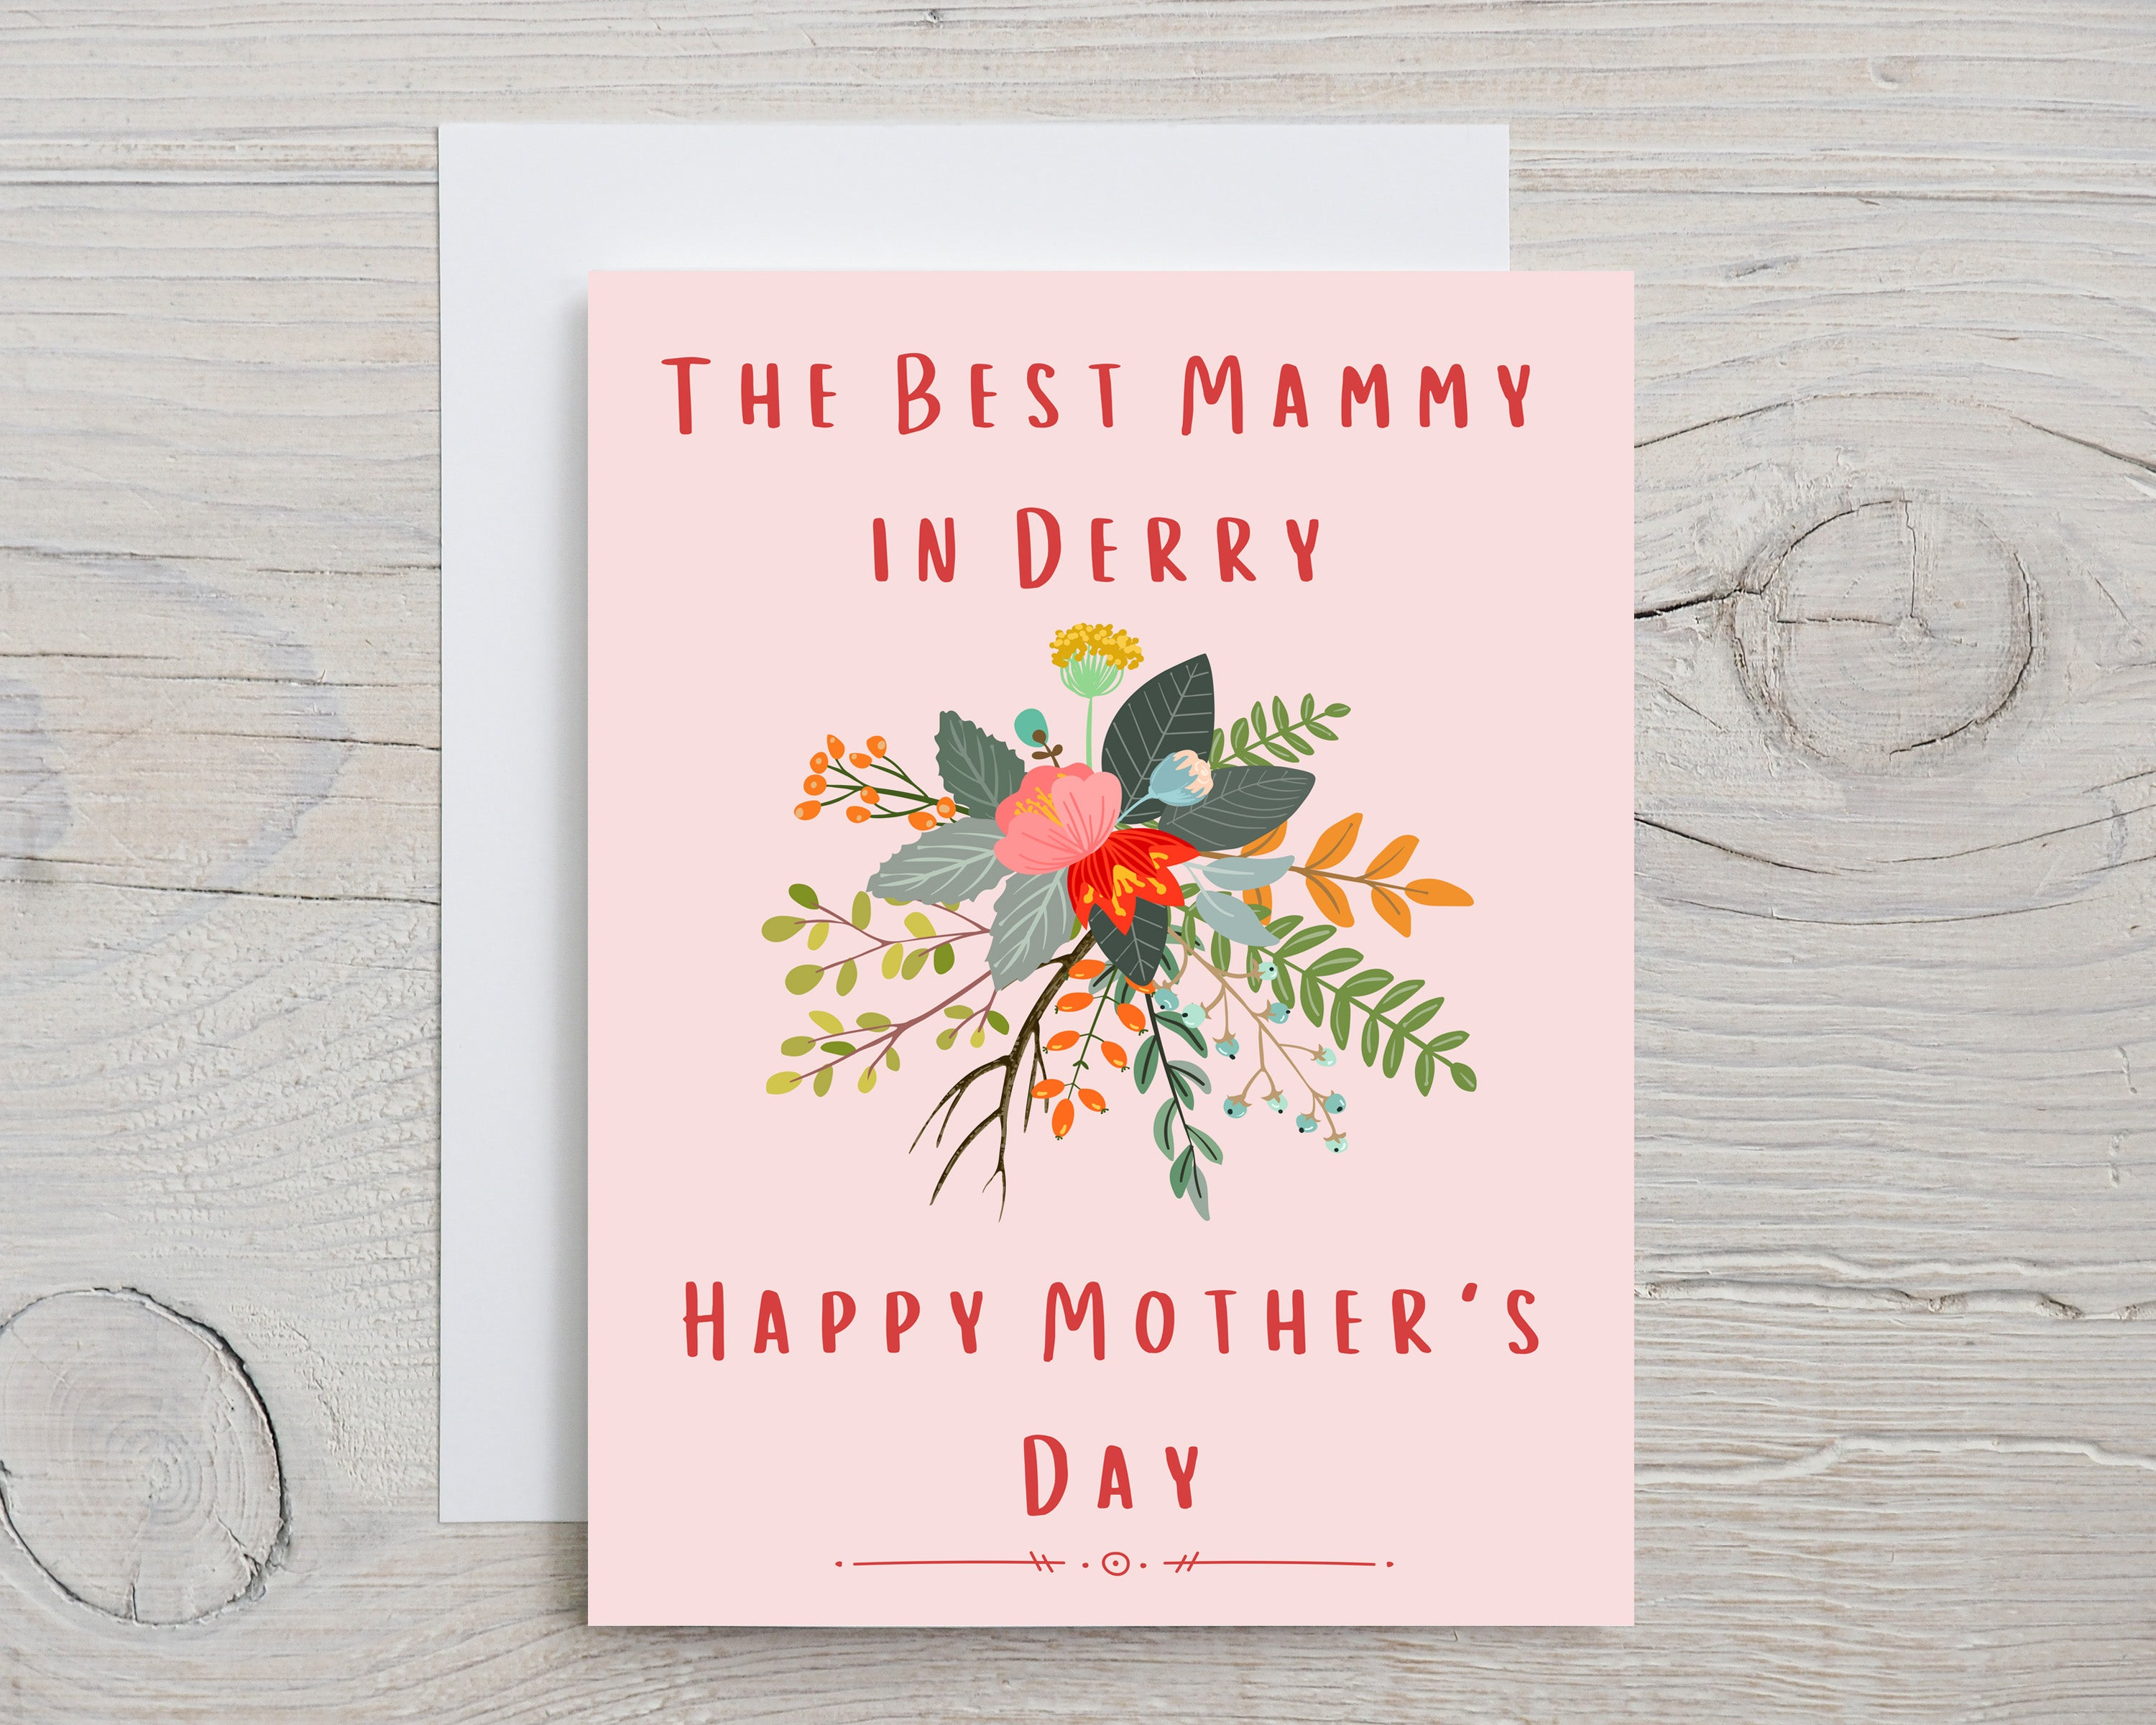 Derry Mother's Day Card